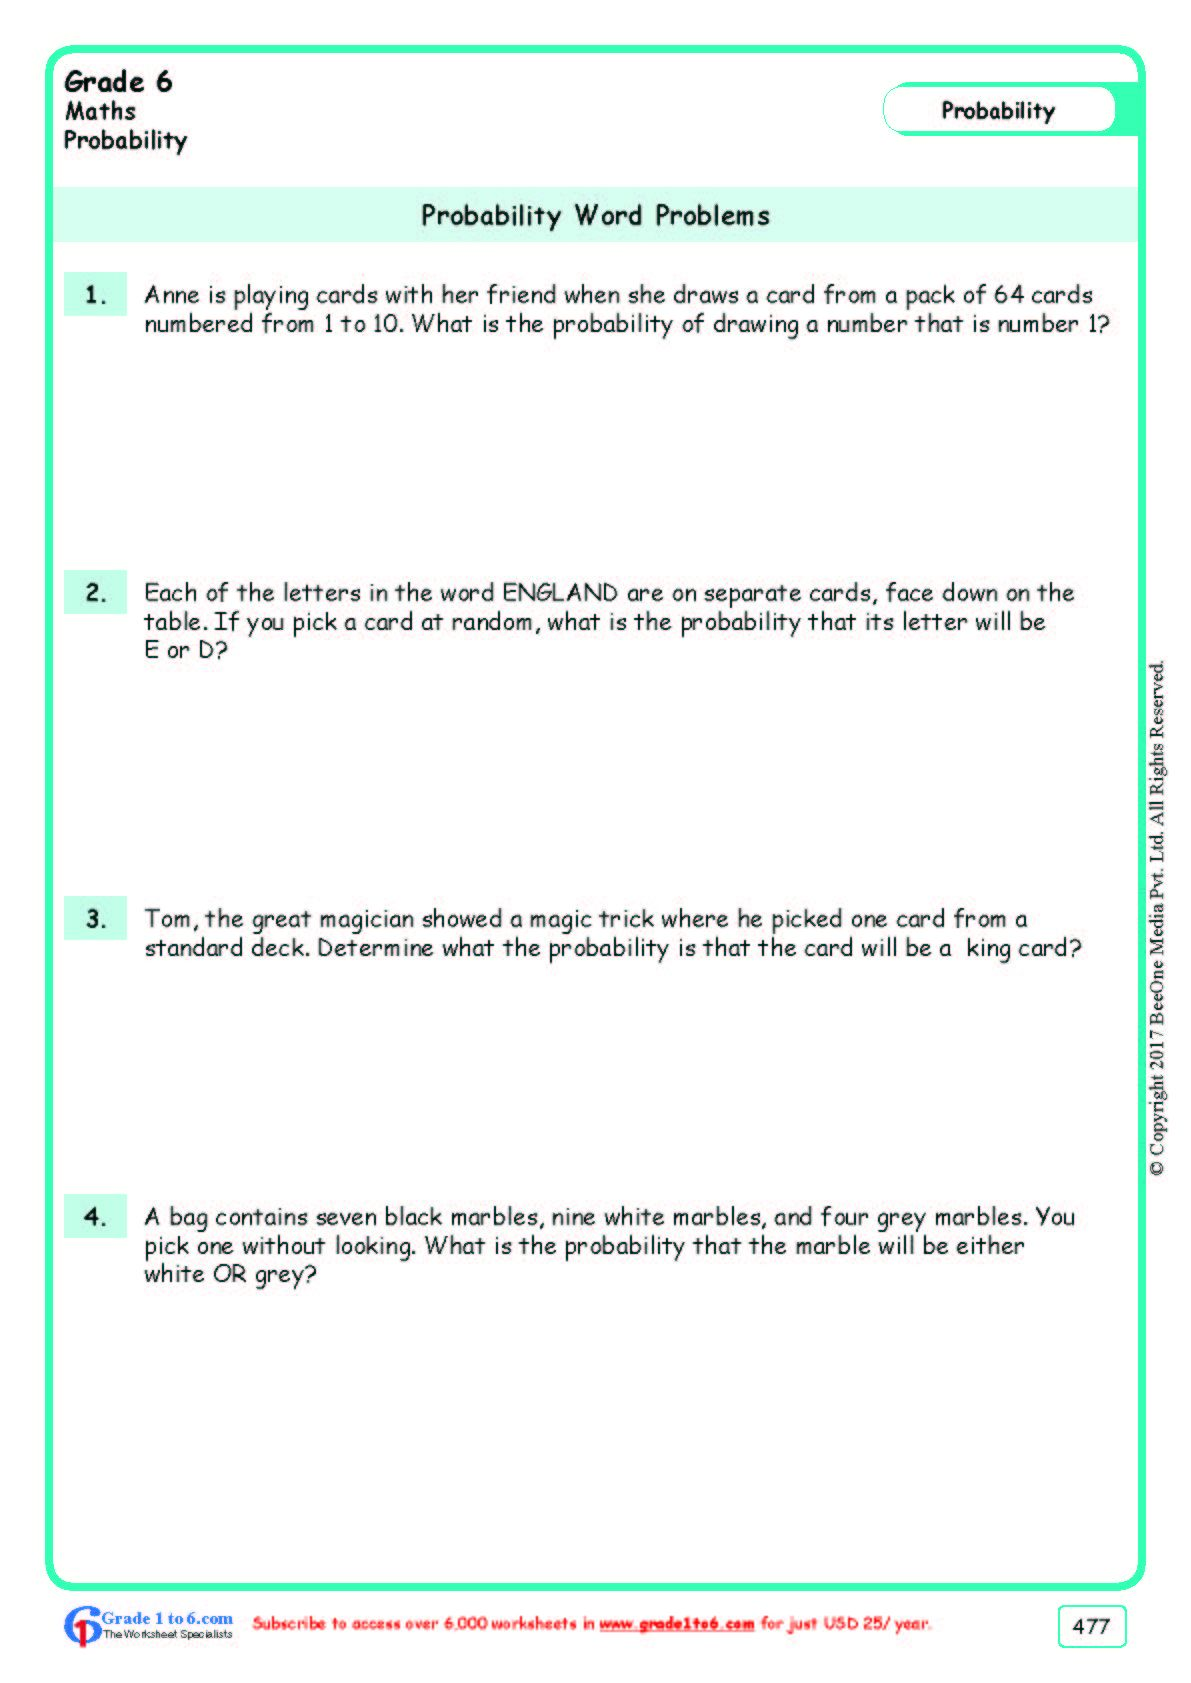 Worksheet Grade 6 Math Probability Word Problems In